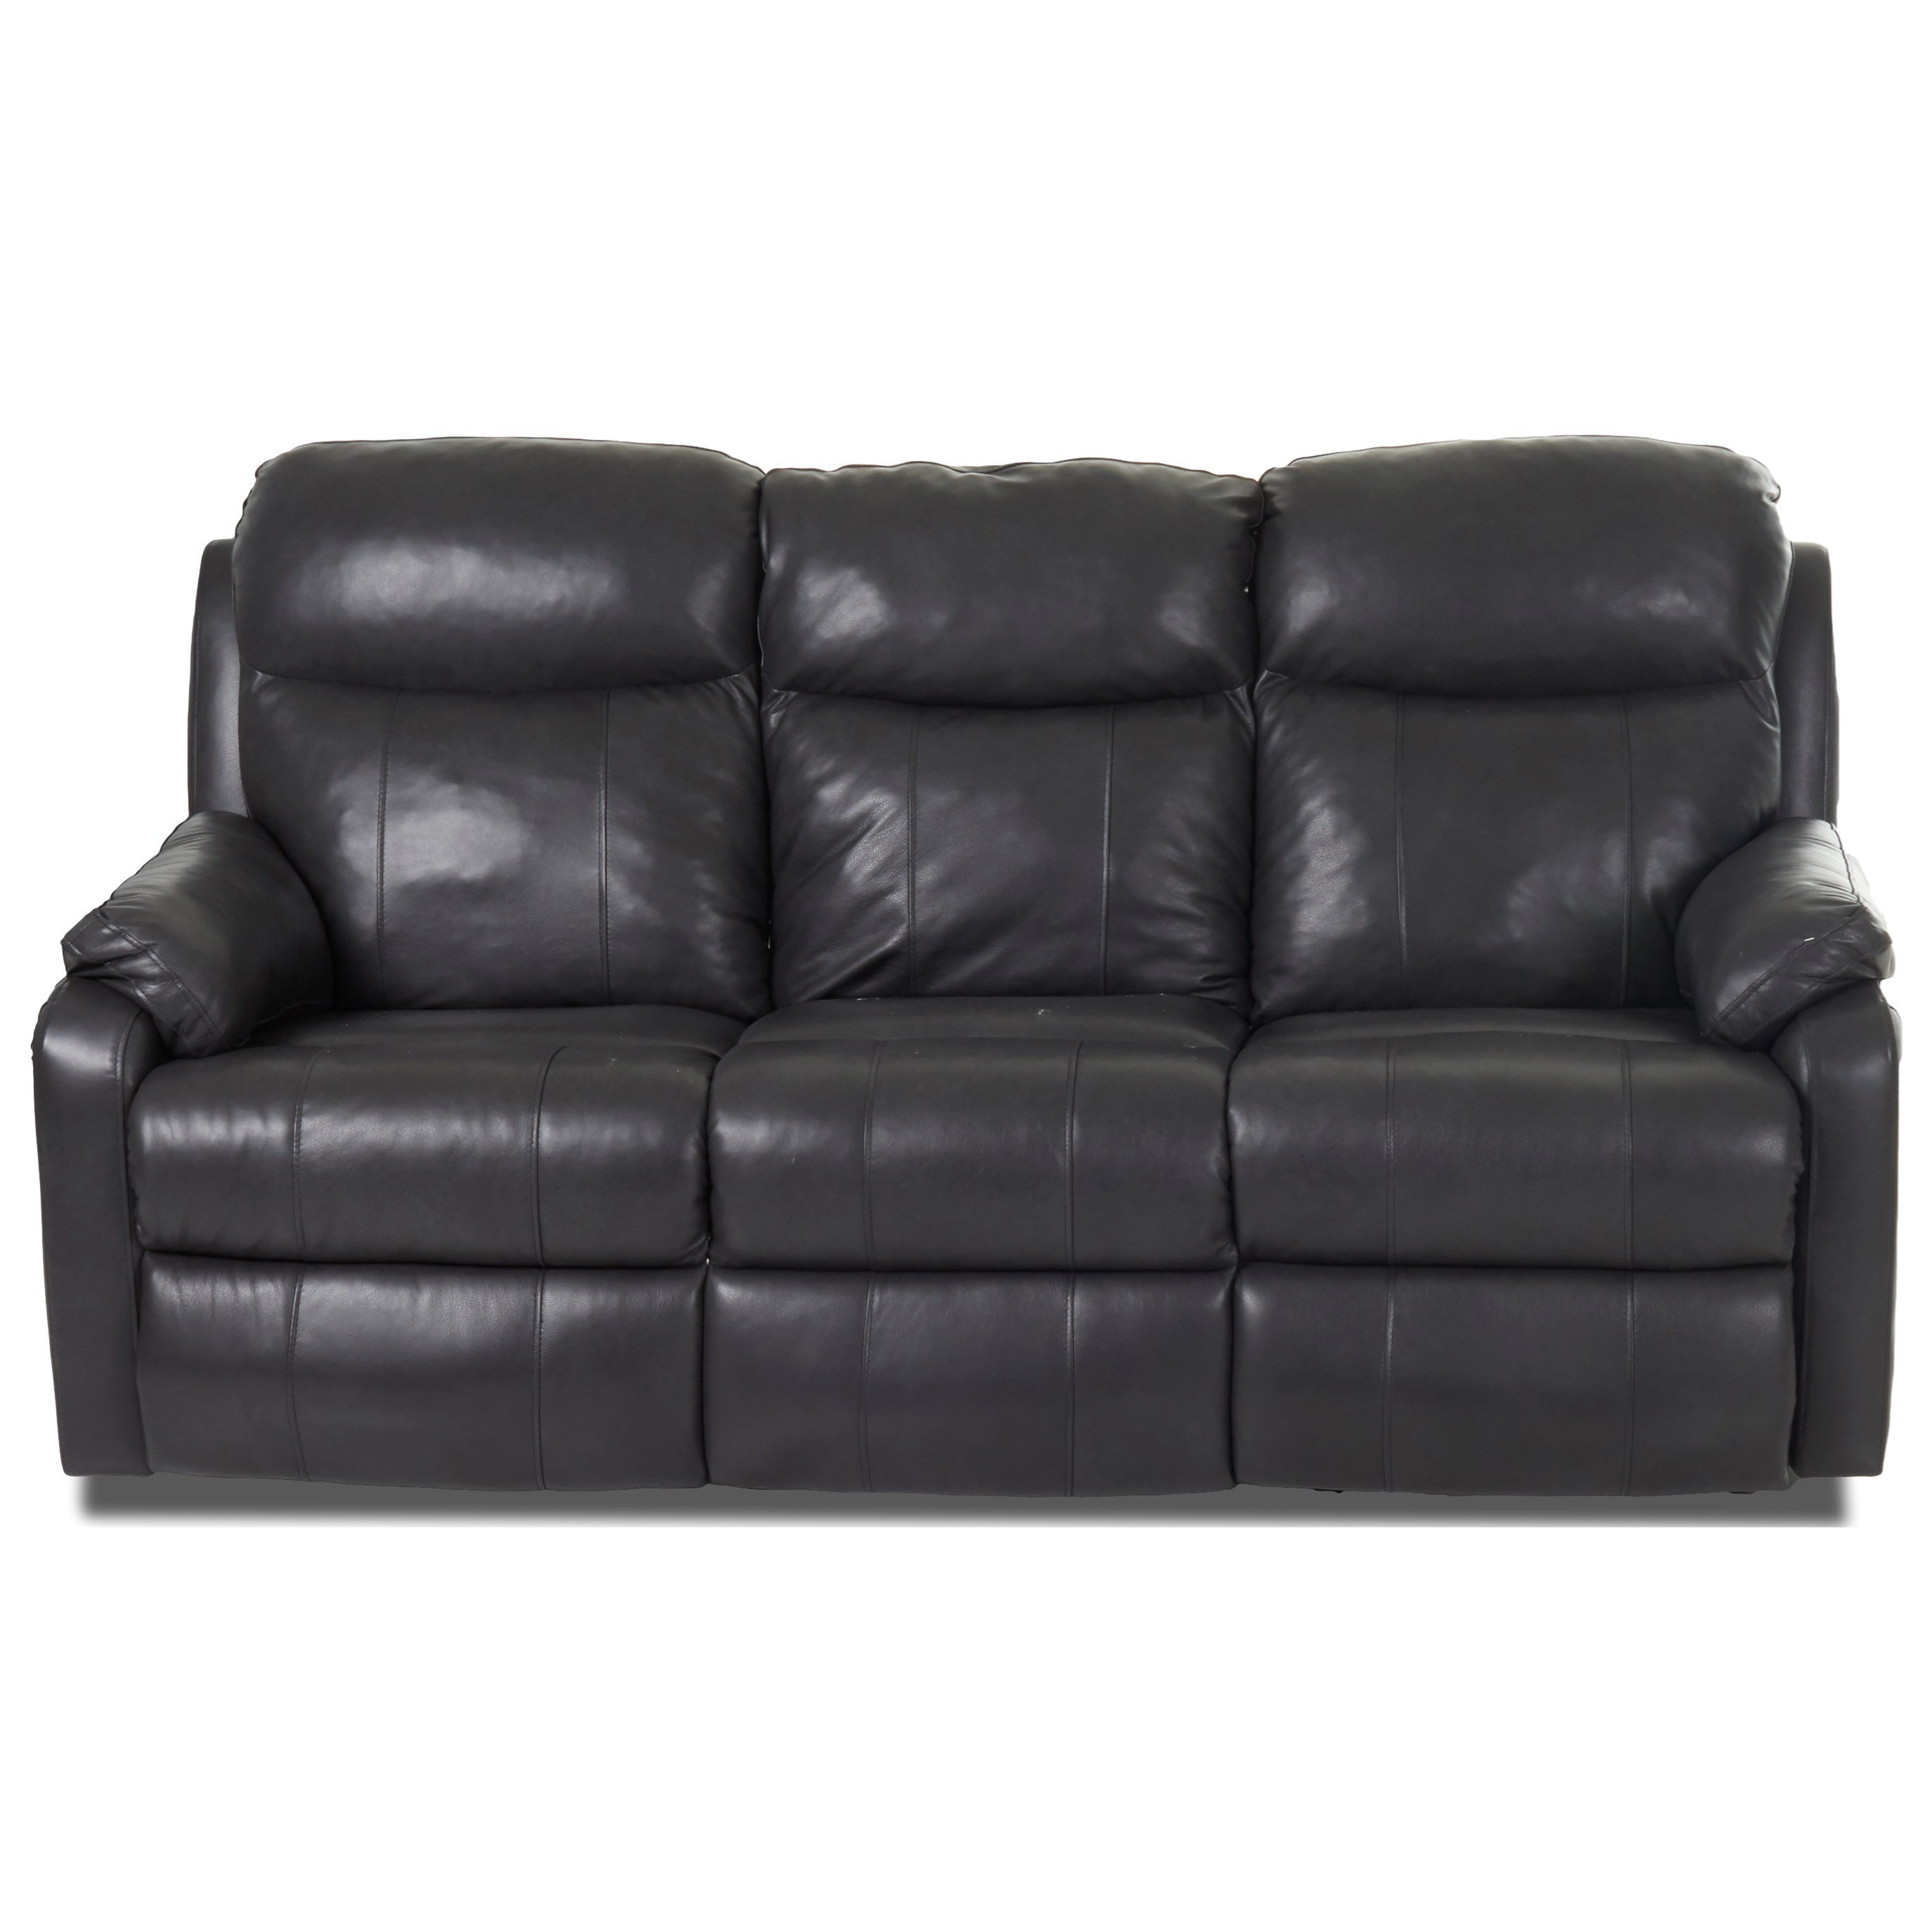 Solitaire Power Reclining Sofa w/ Pwr Head & Lumbar by Klaussner at Northeast Factory Direct